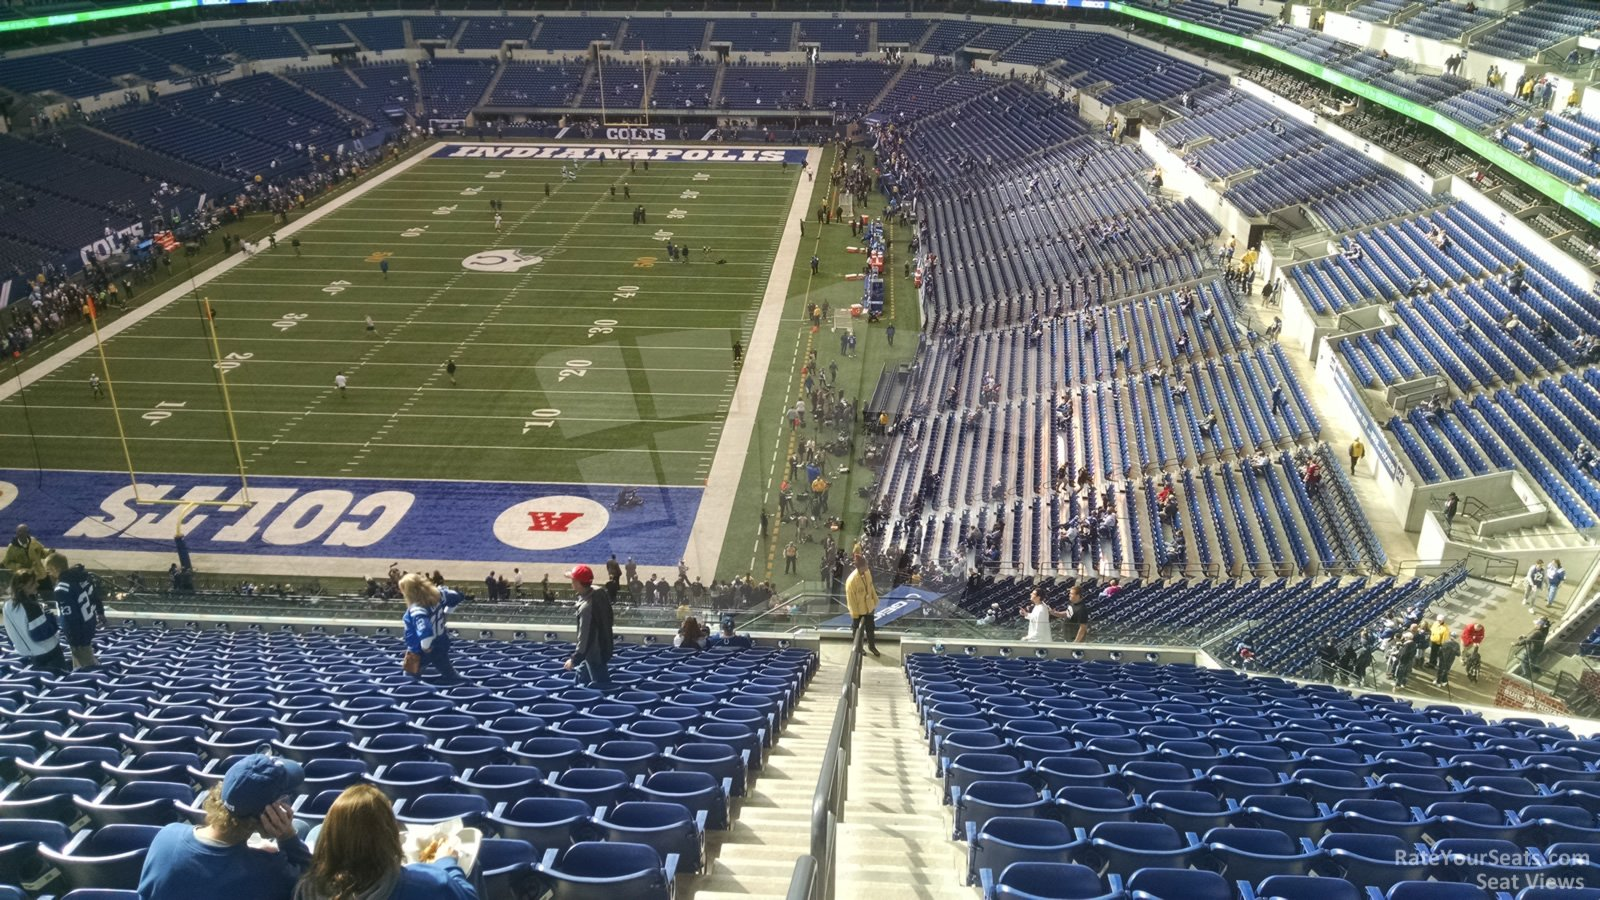 Indianapolis Colts Seat View for Lucas Oil Stadium Section 450, Row SRO